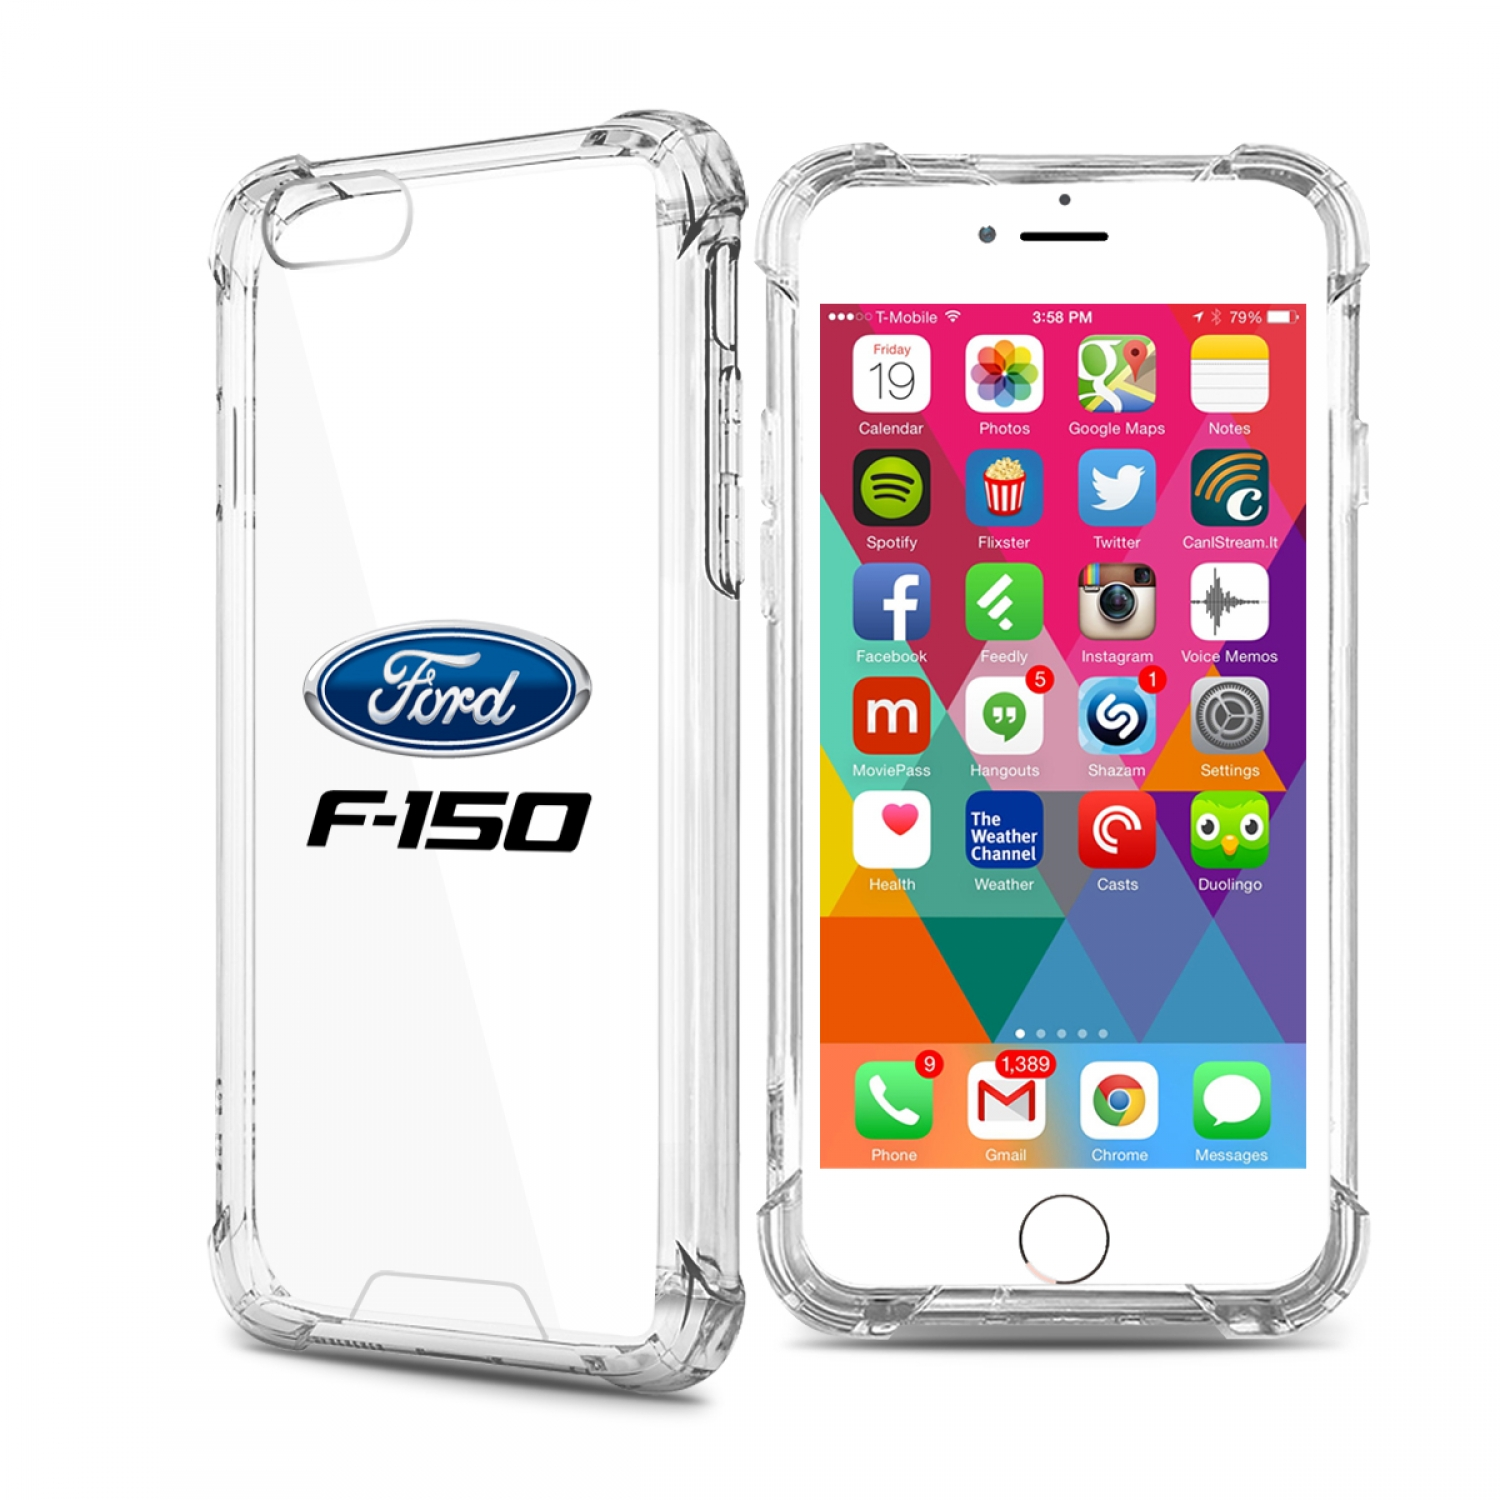 Ford F-150 iPhone 7 Clear TPU Shockproof Cell Phone Case